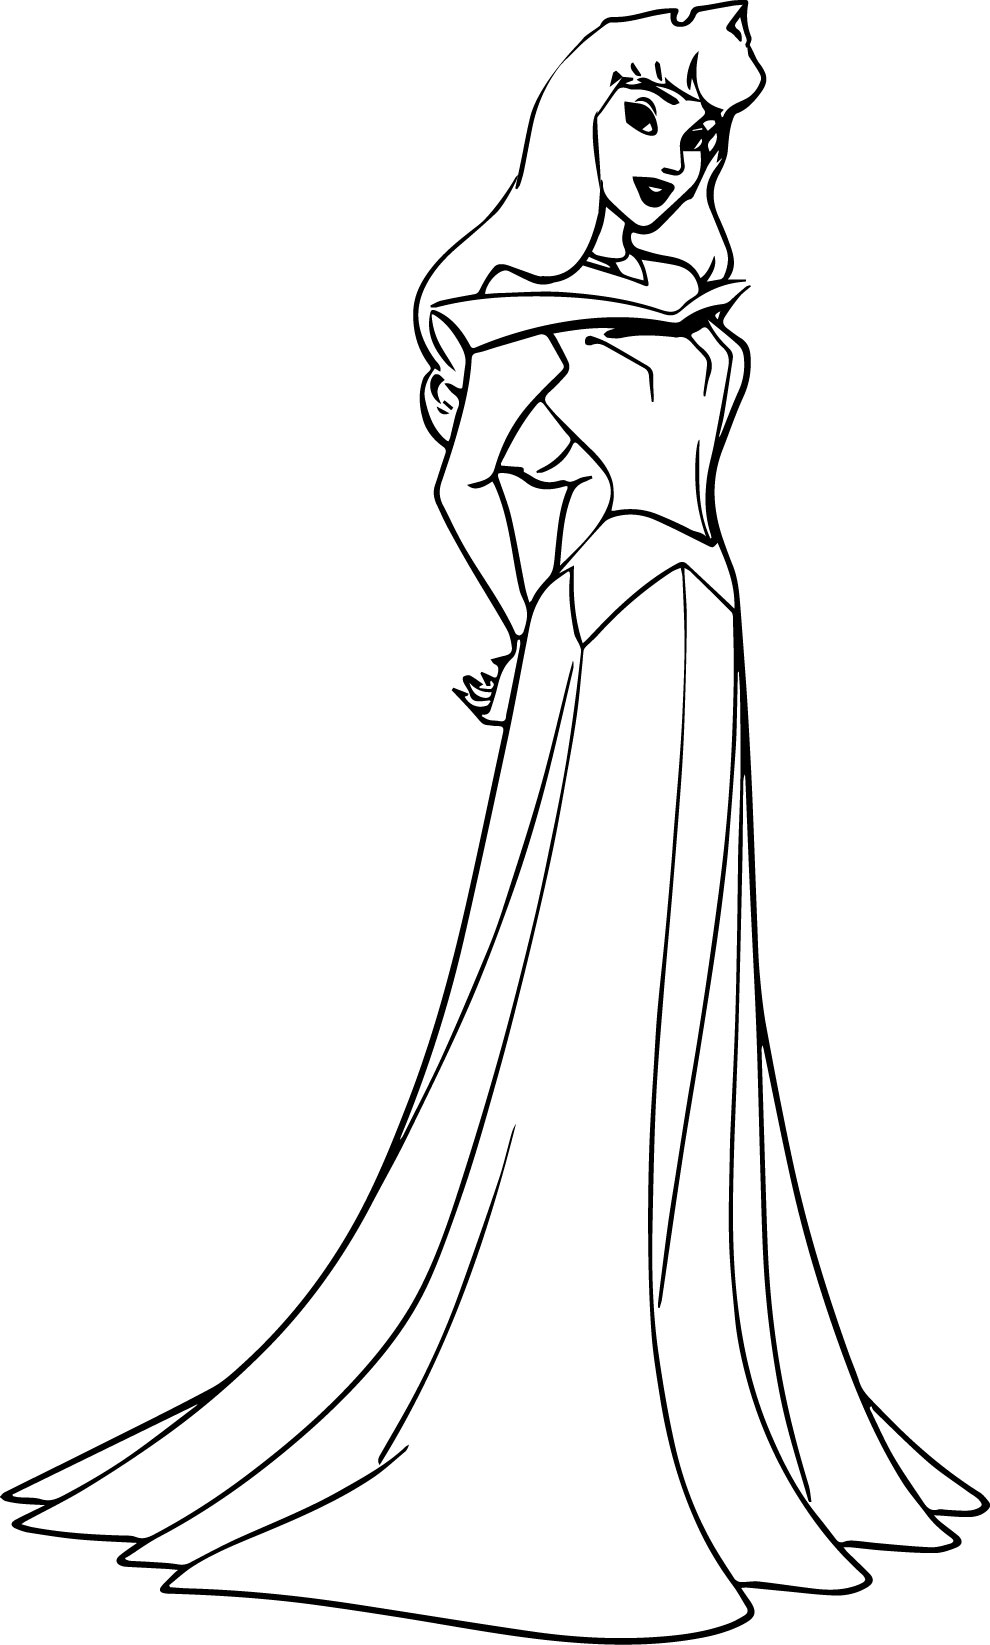 Disney princess coloring pages aurora - Disney Coloring Pages